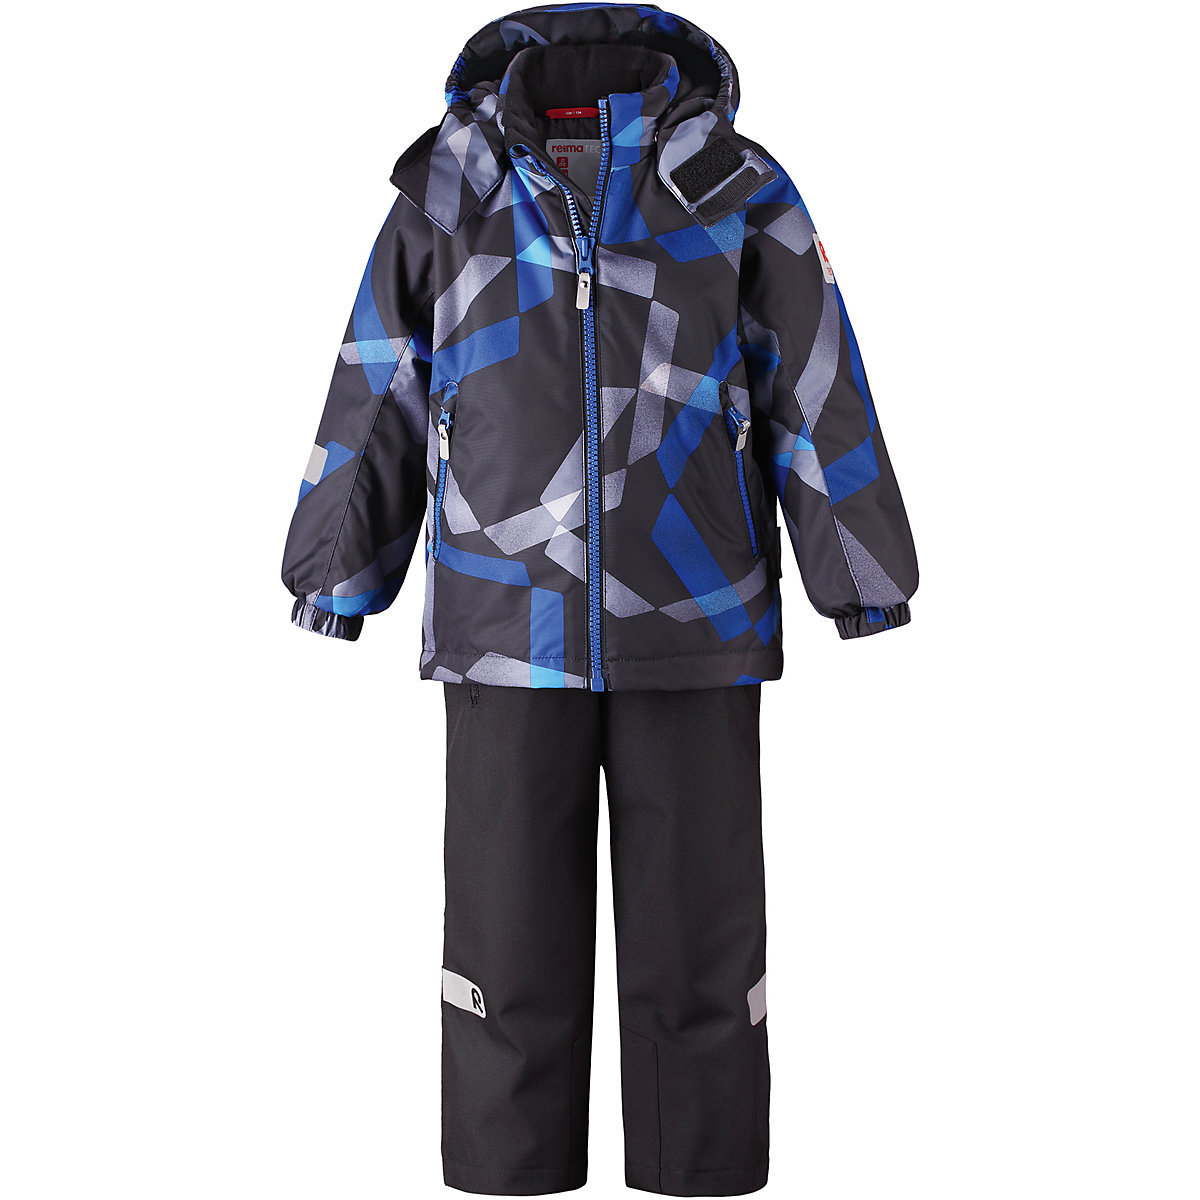 REIMA Babys Sets 8689673 for boys Polyester Baby Kit boy Jacket and pants 2018 baby boys 90